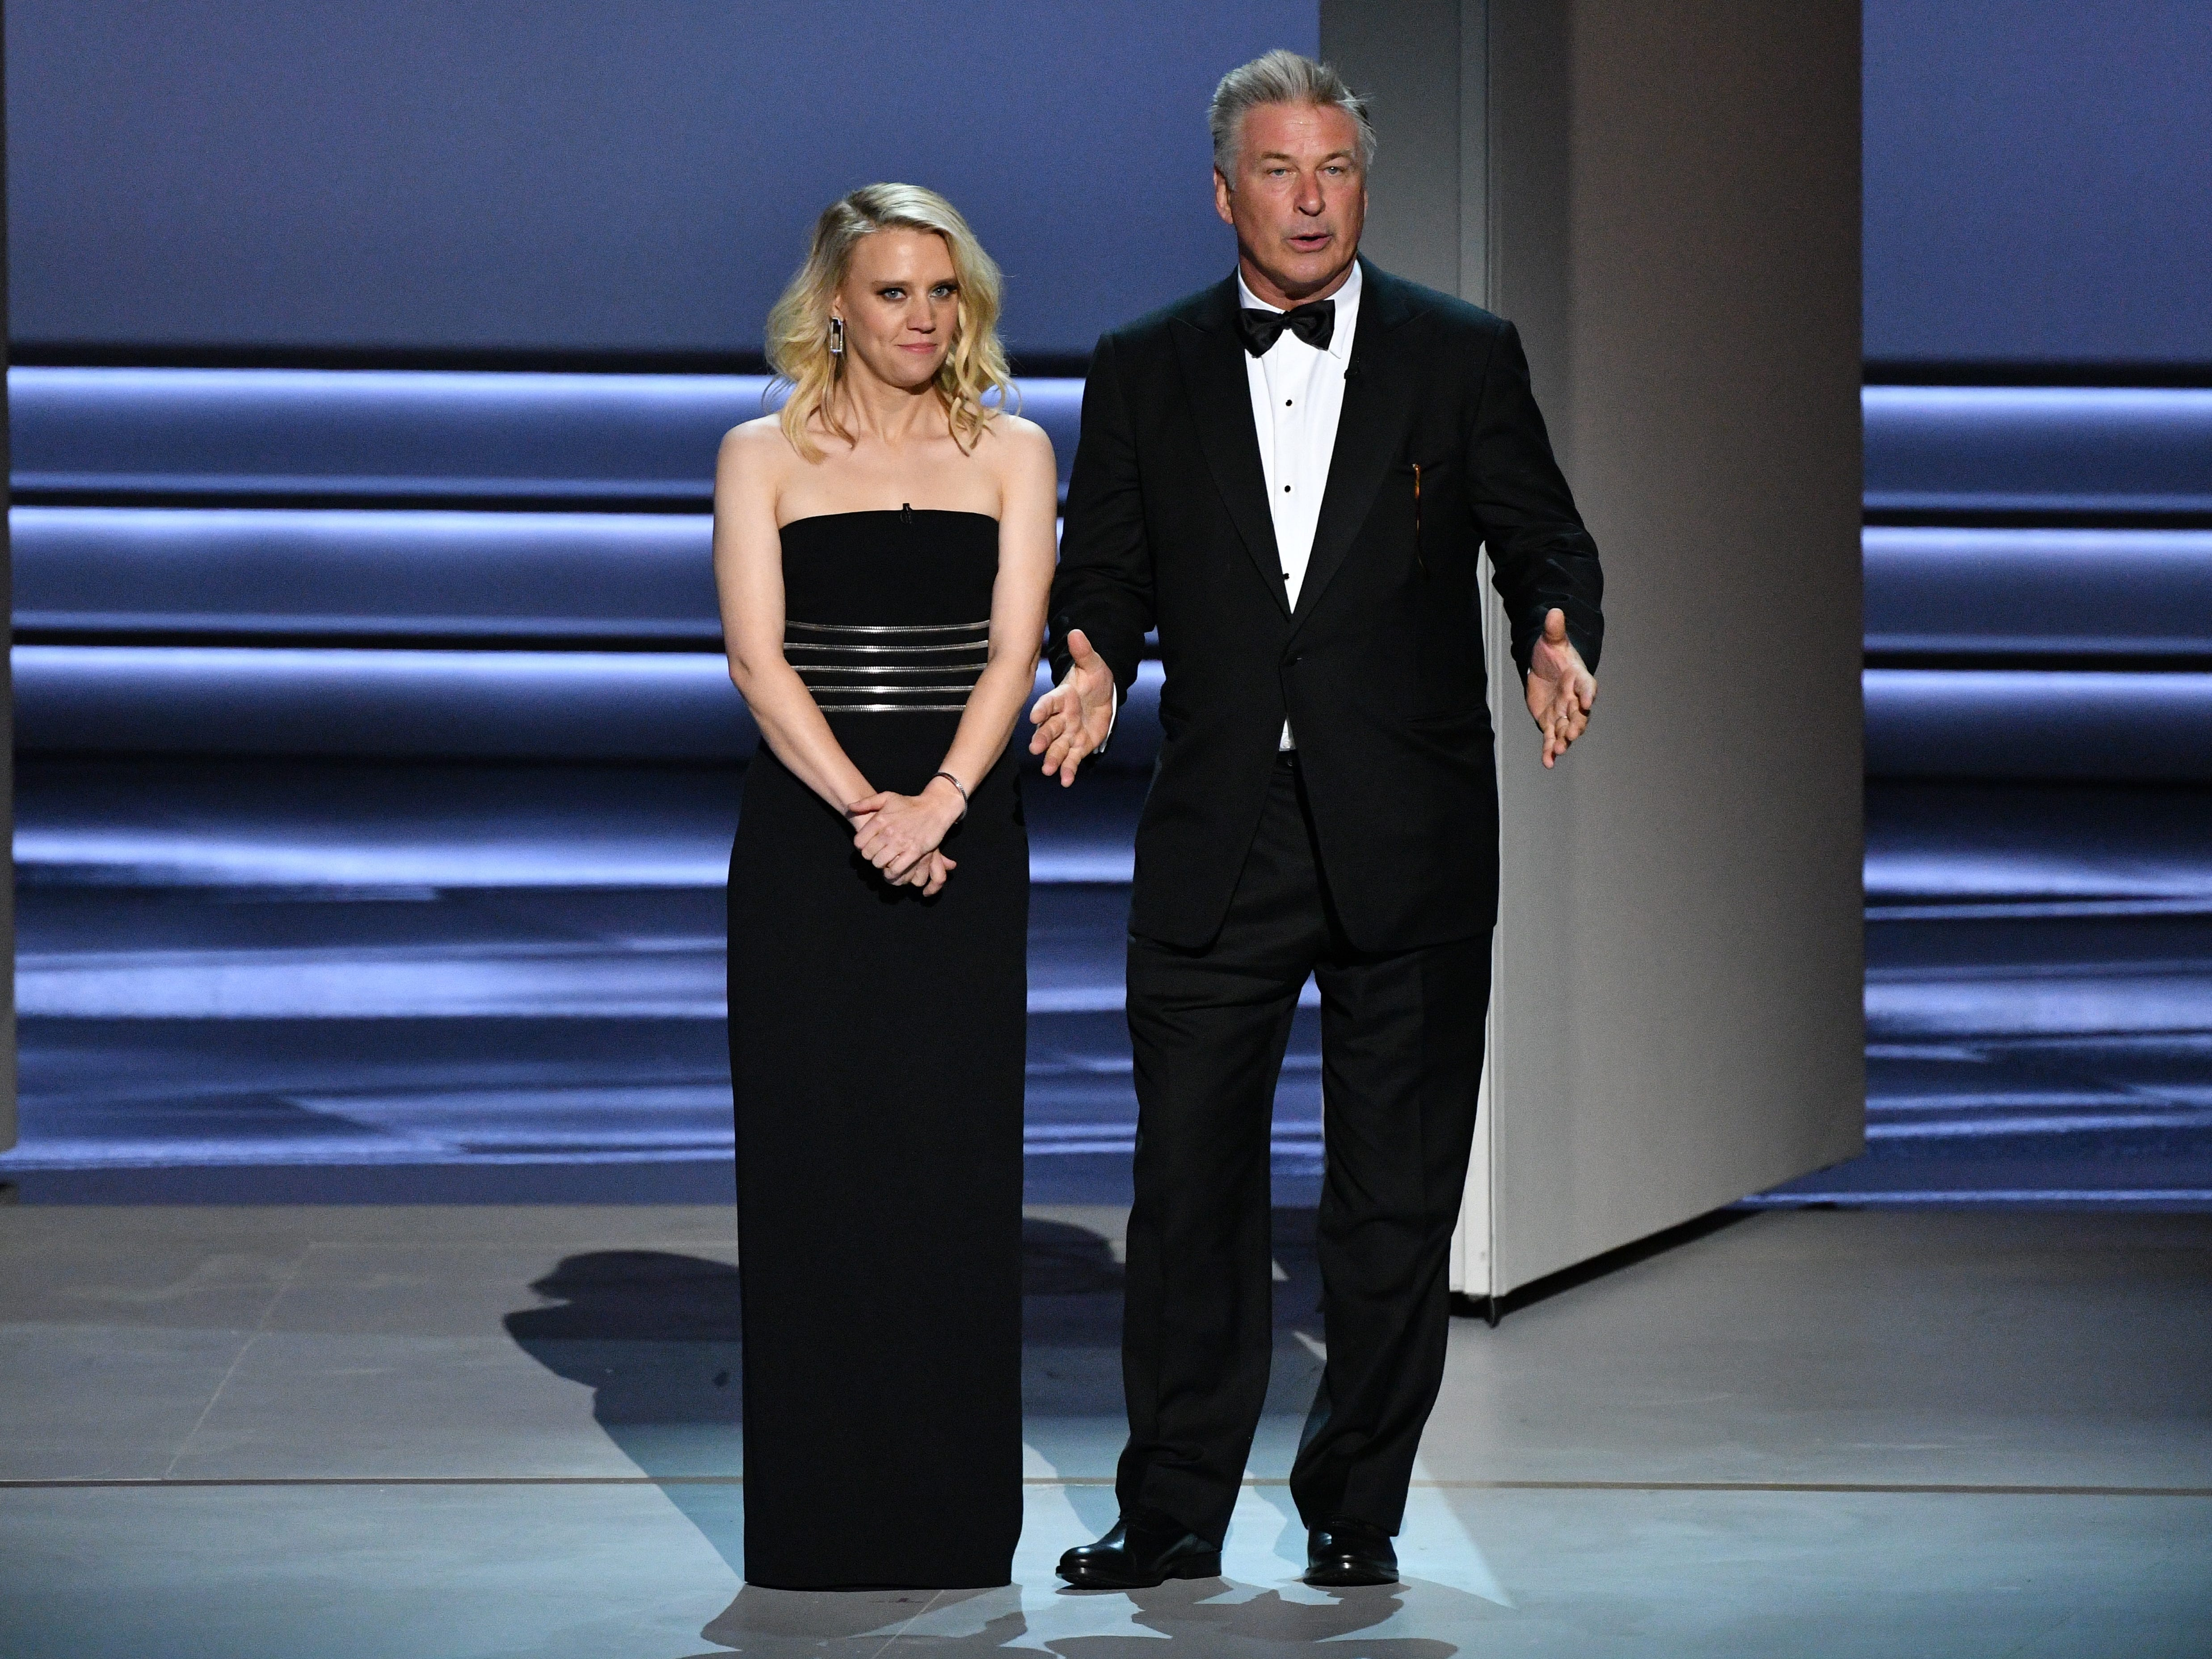 Kate McKinnon and Alec Baldwin talk during the show.